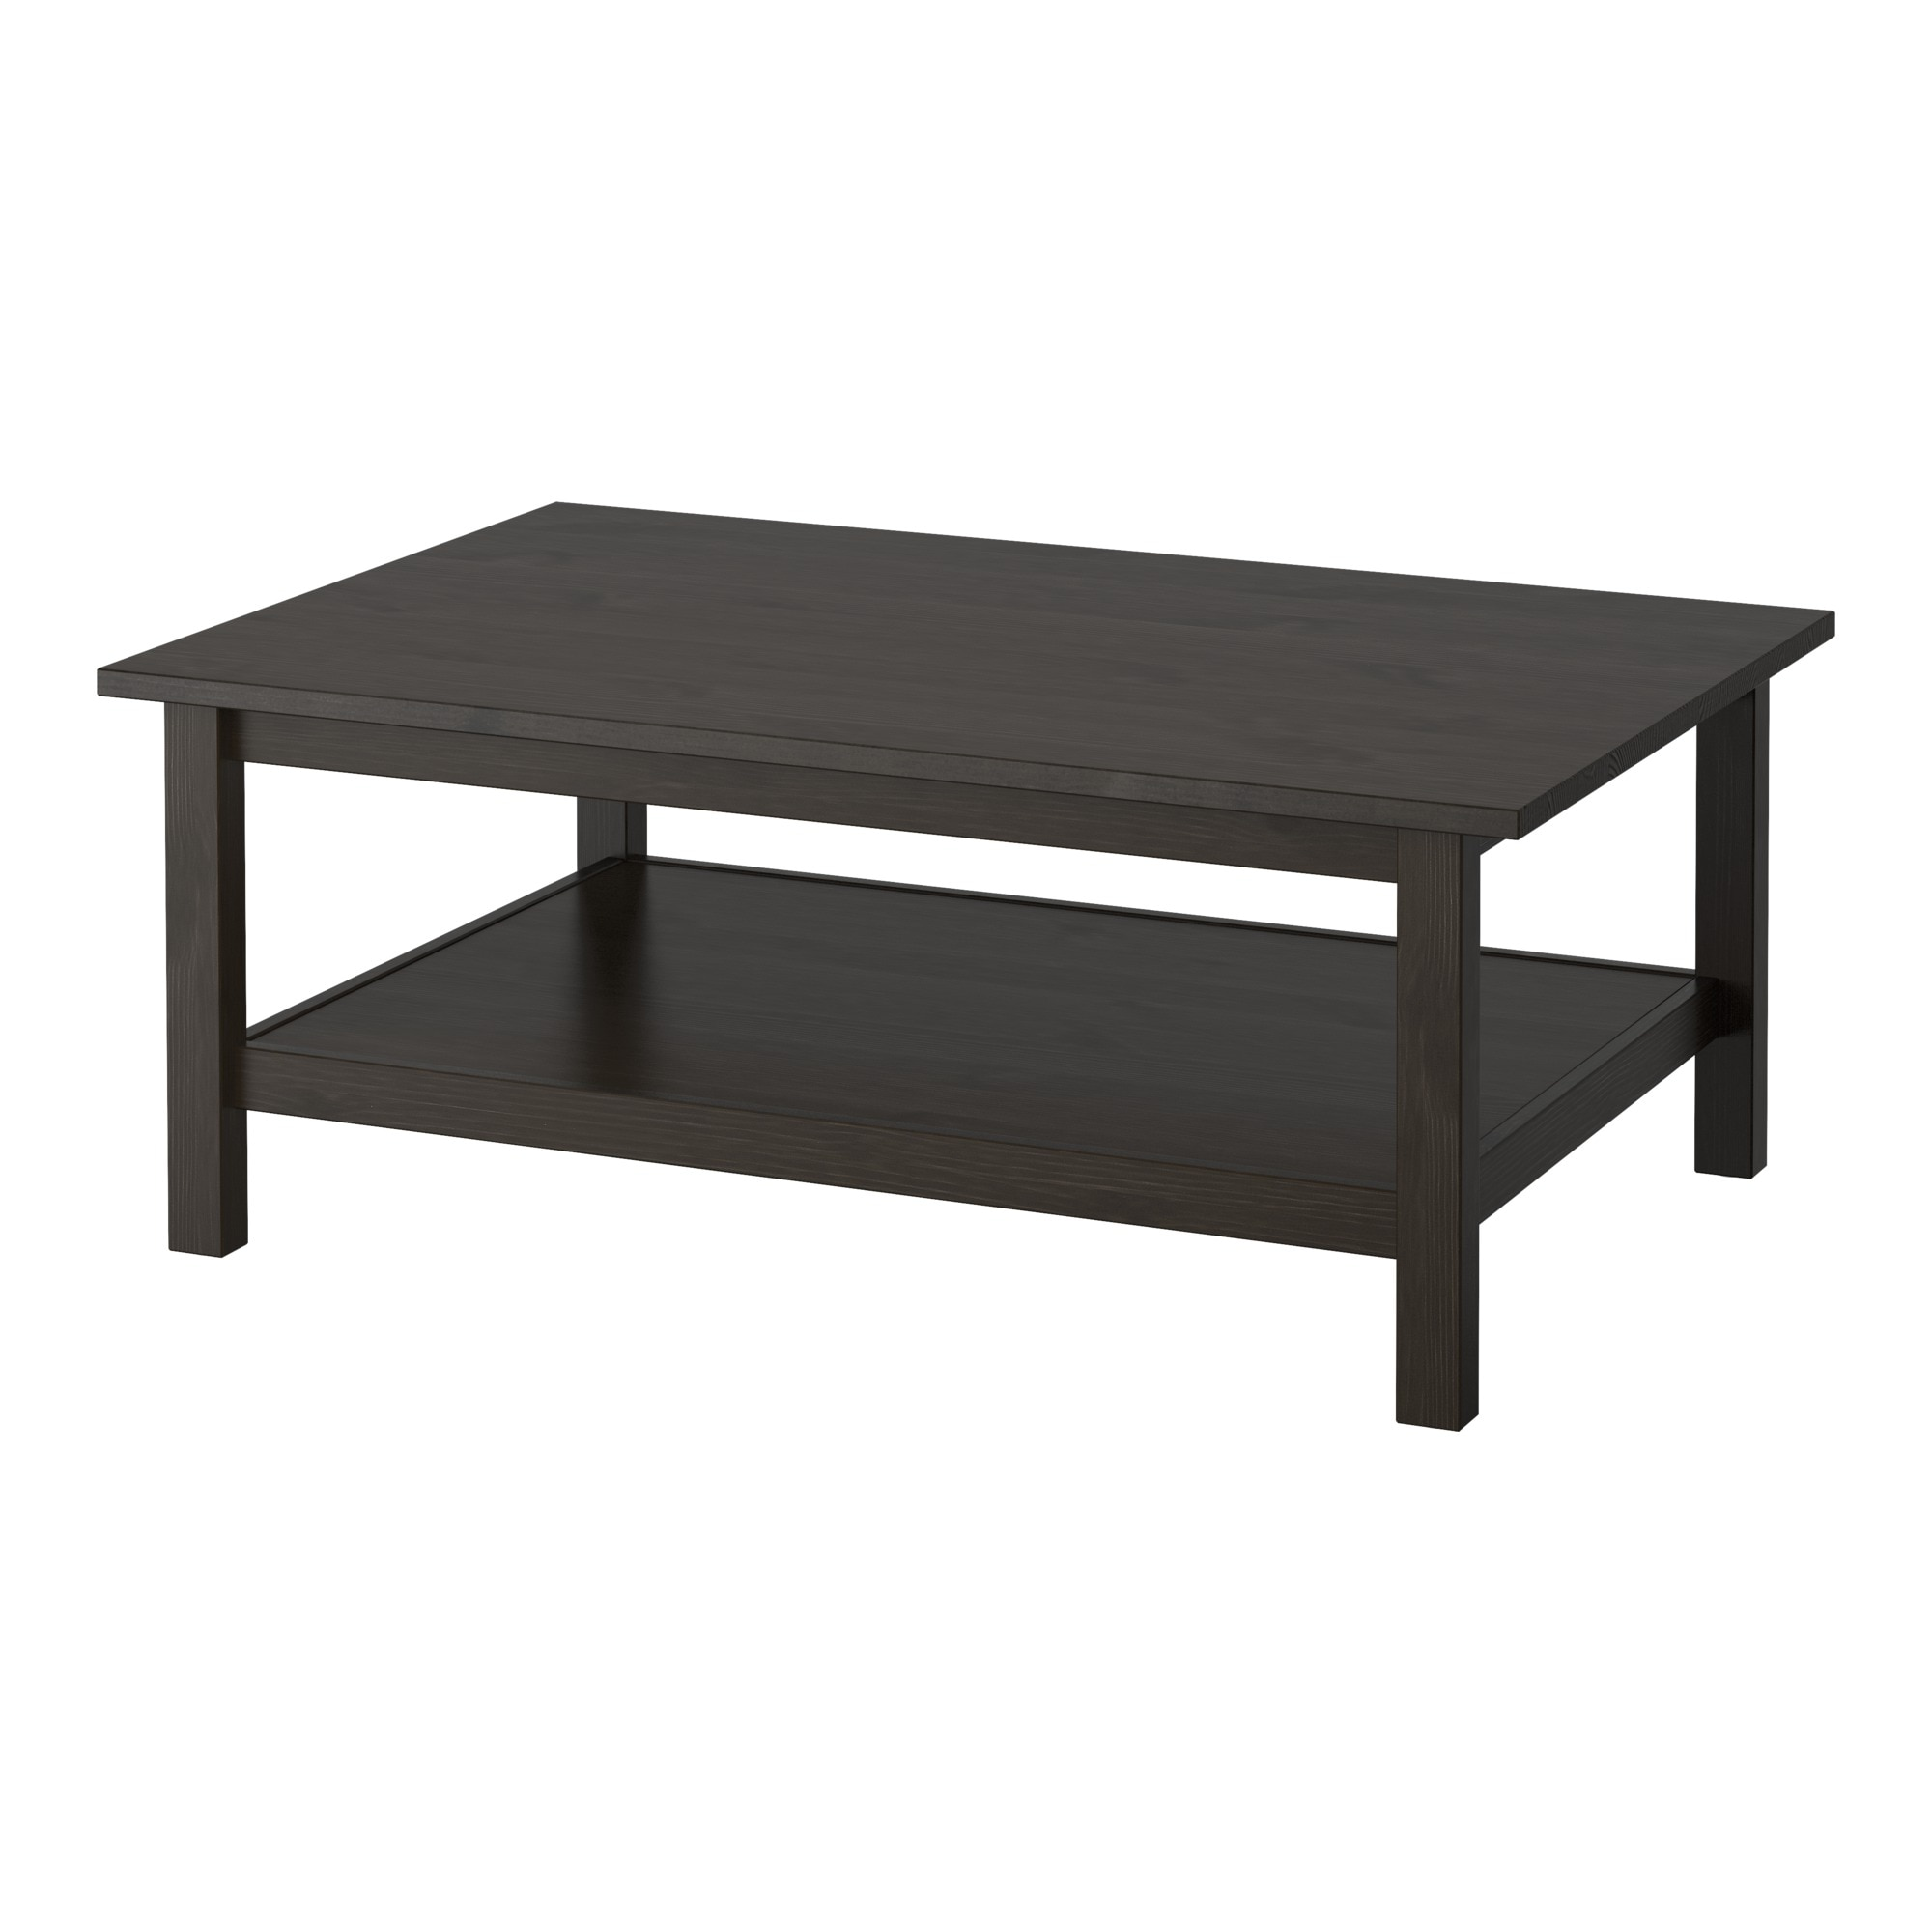 Ikea Coffee Table New in Images of Excellent